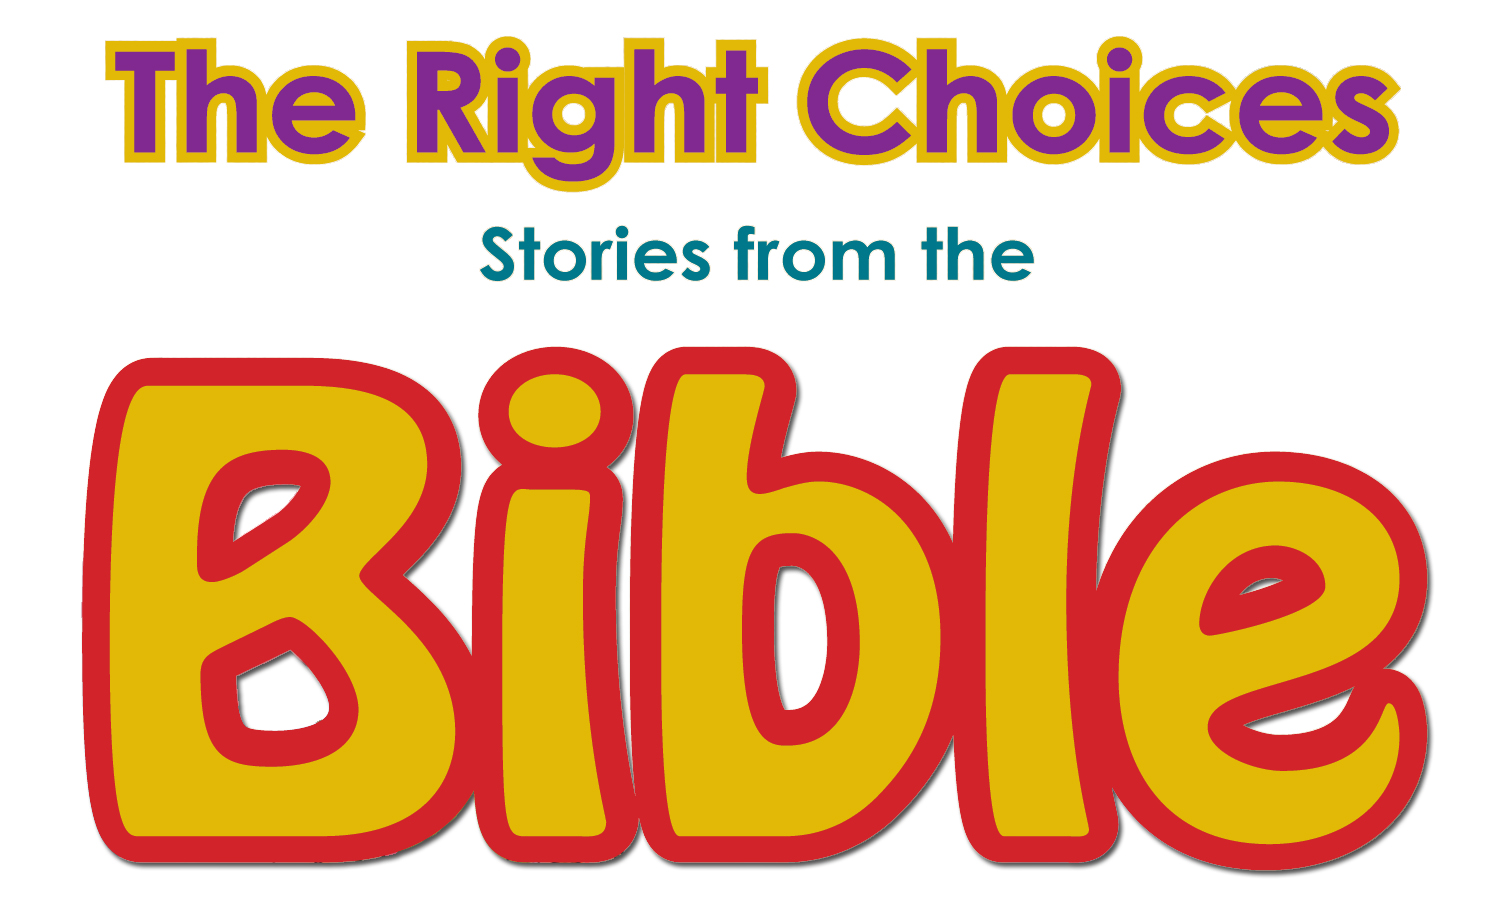 The Right Choices Stories from the Bible title